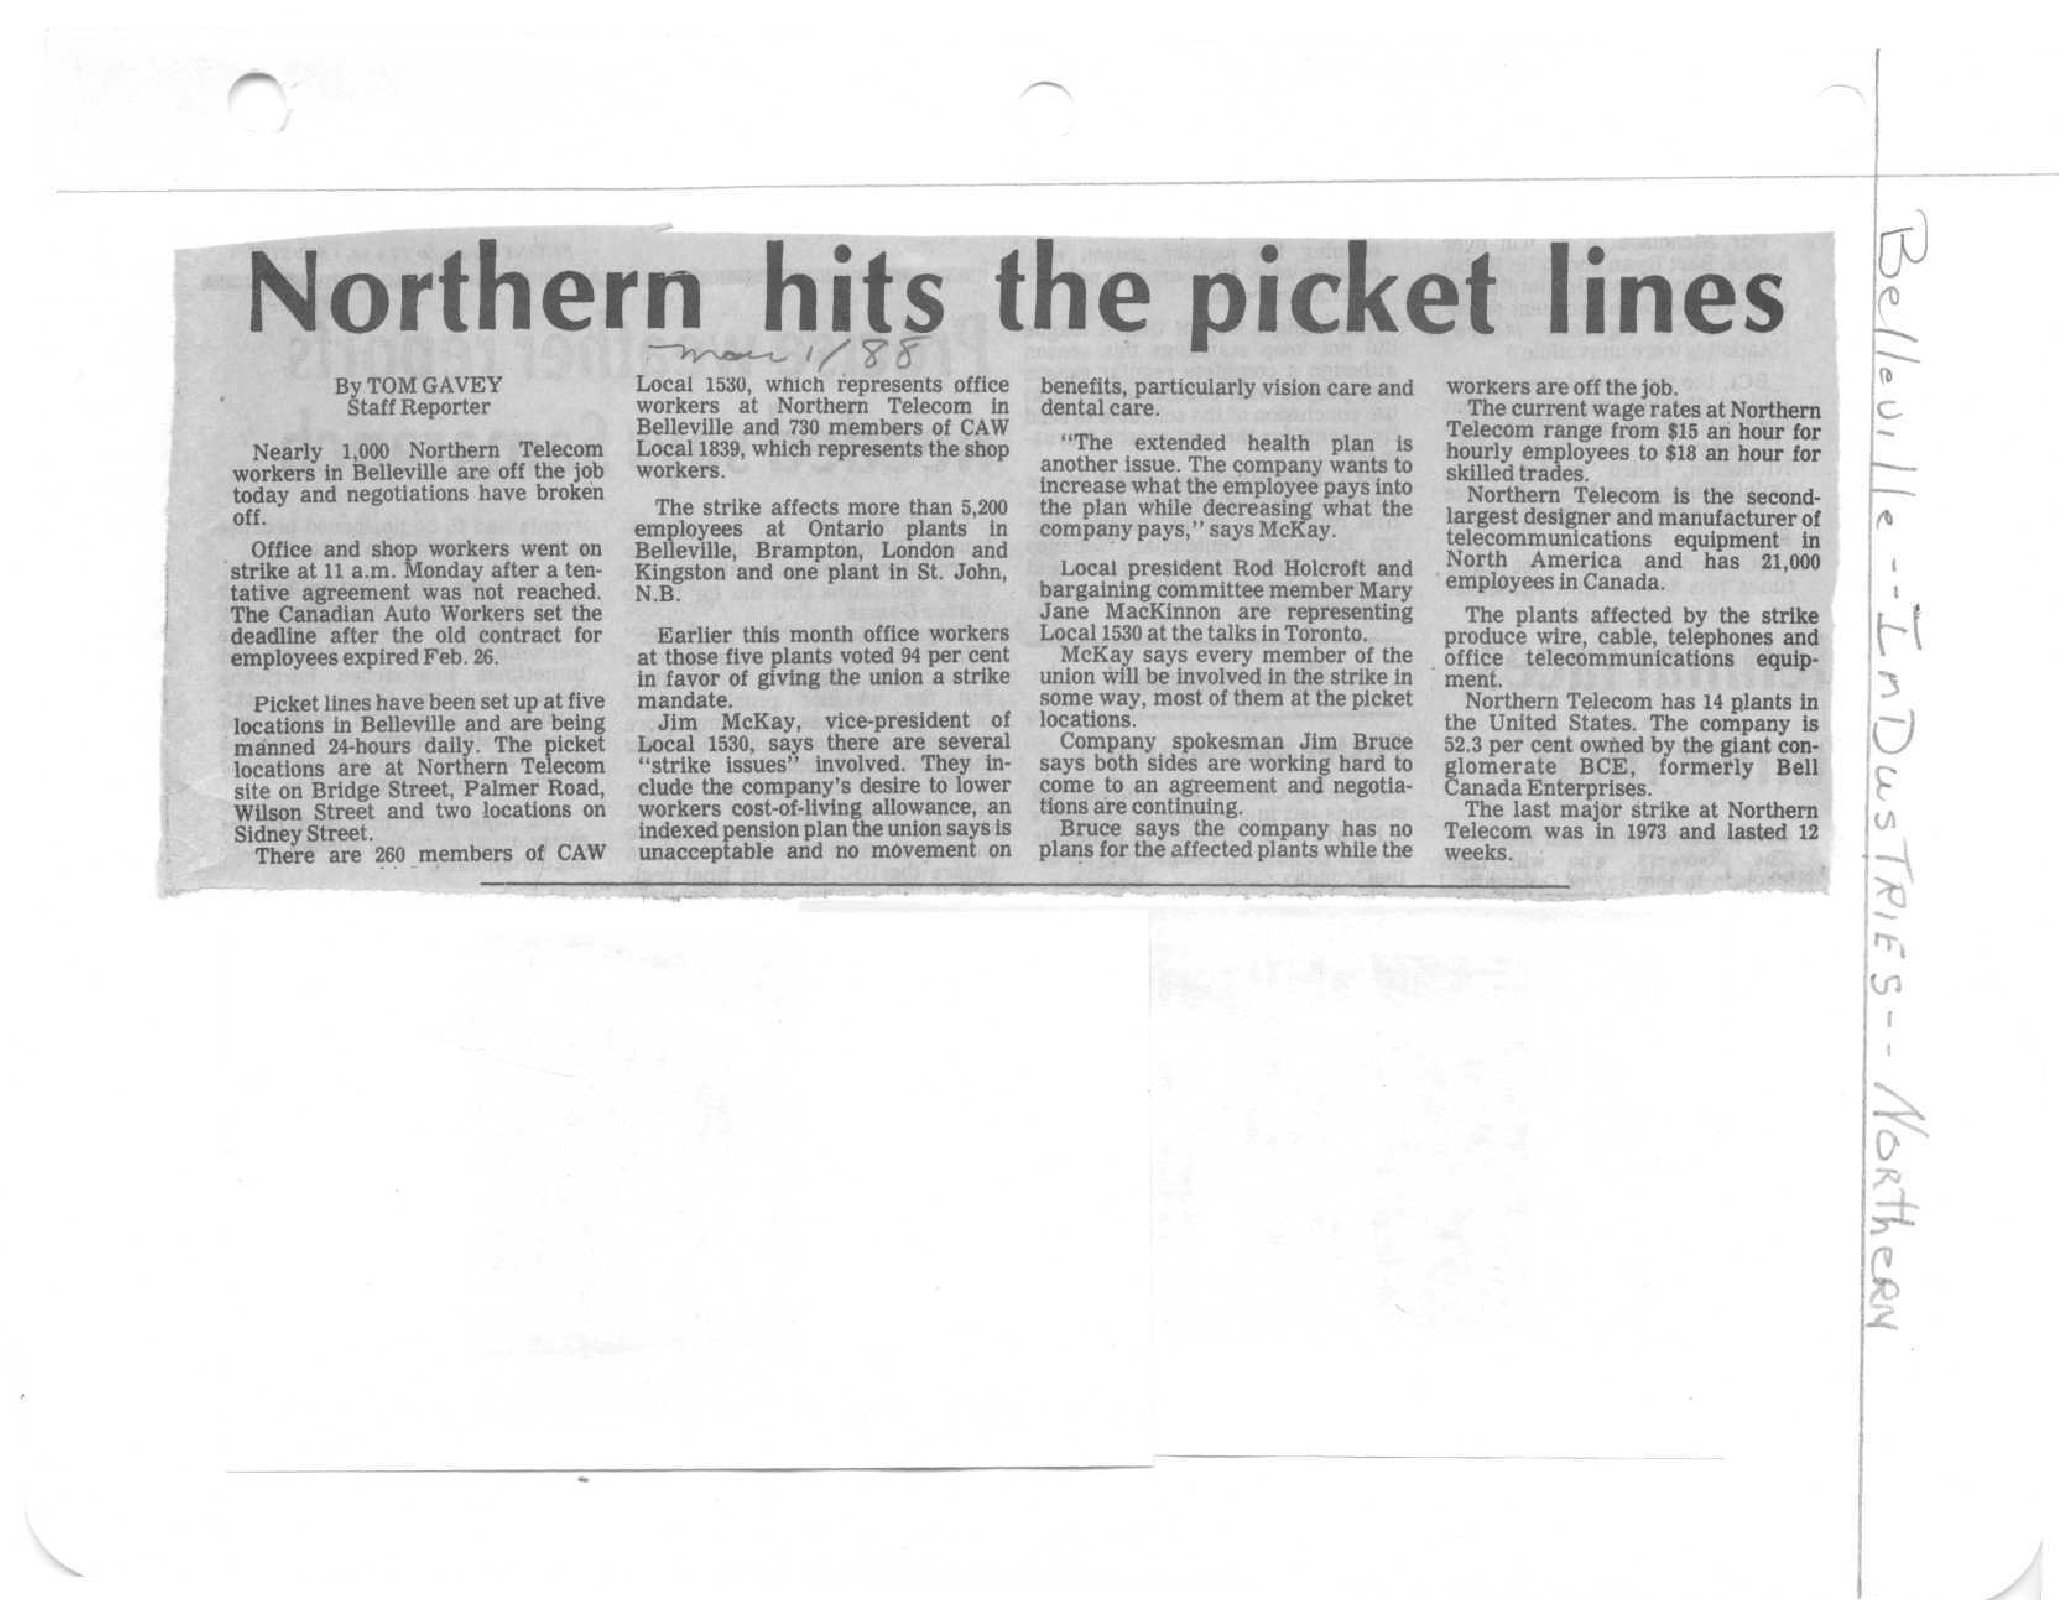 Northern hits the picket lines